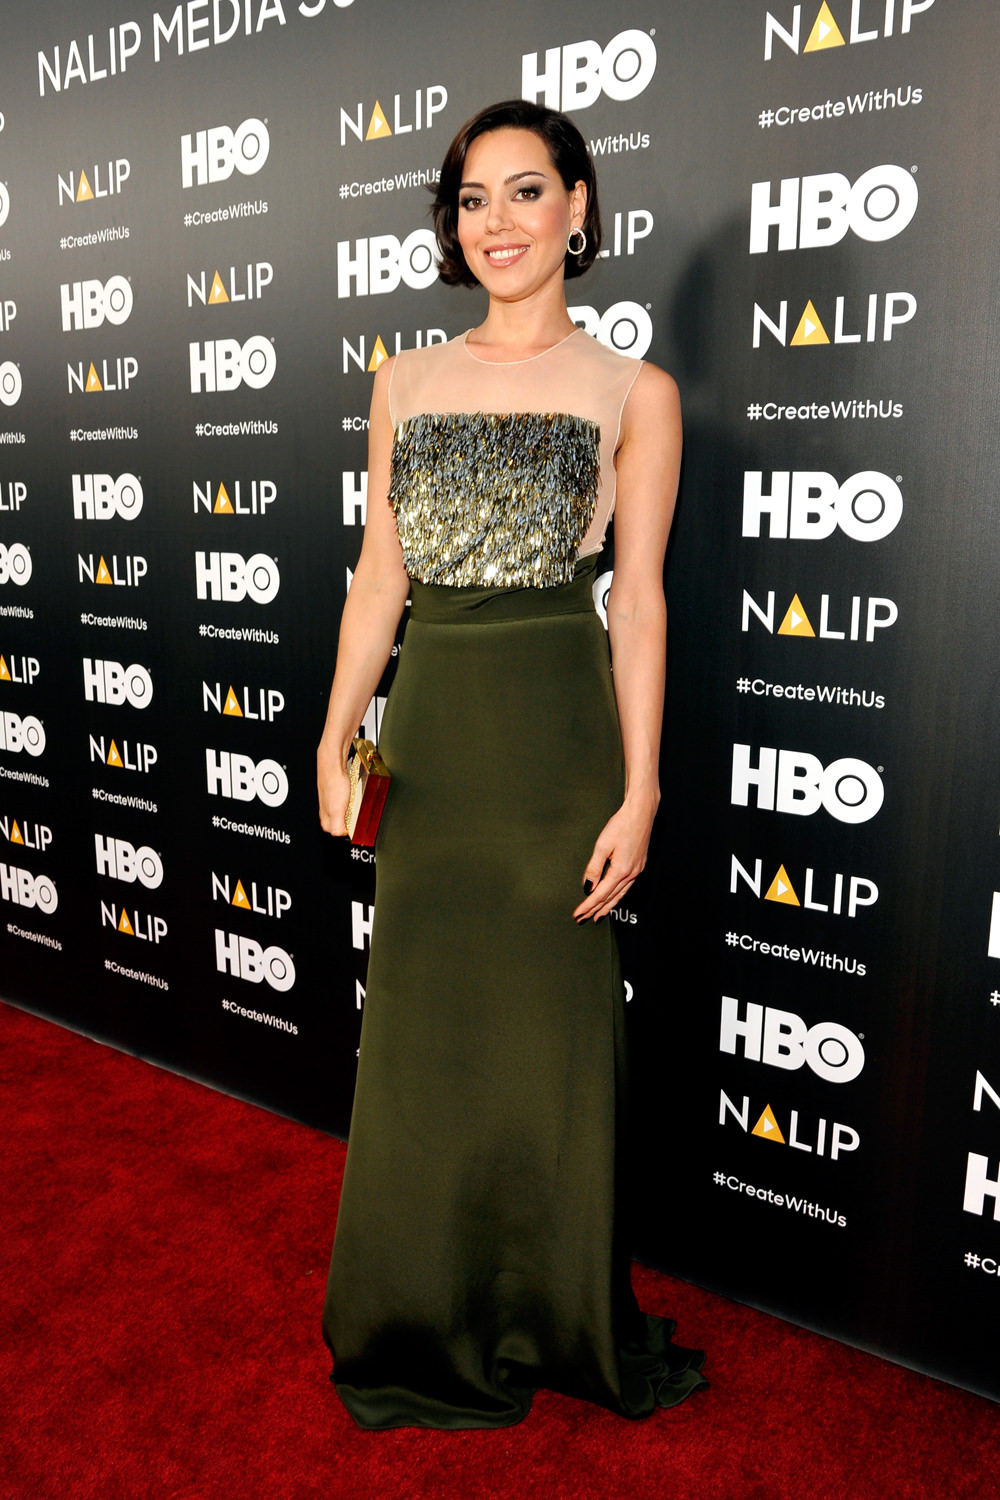 Aubrey-Plaza-NALIP-Latino-Media-Awards-2016-Red-Carpet-Fashion-Lela-Rose-Tom-Lorenzo-Site (1)